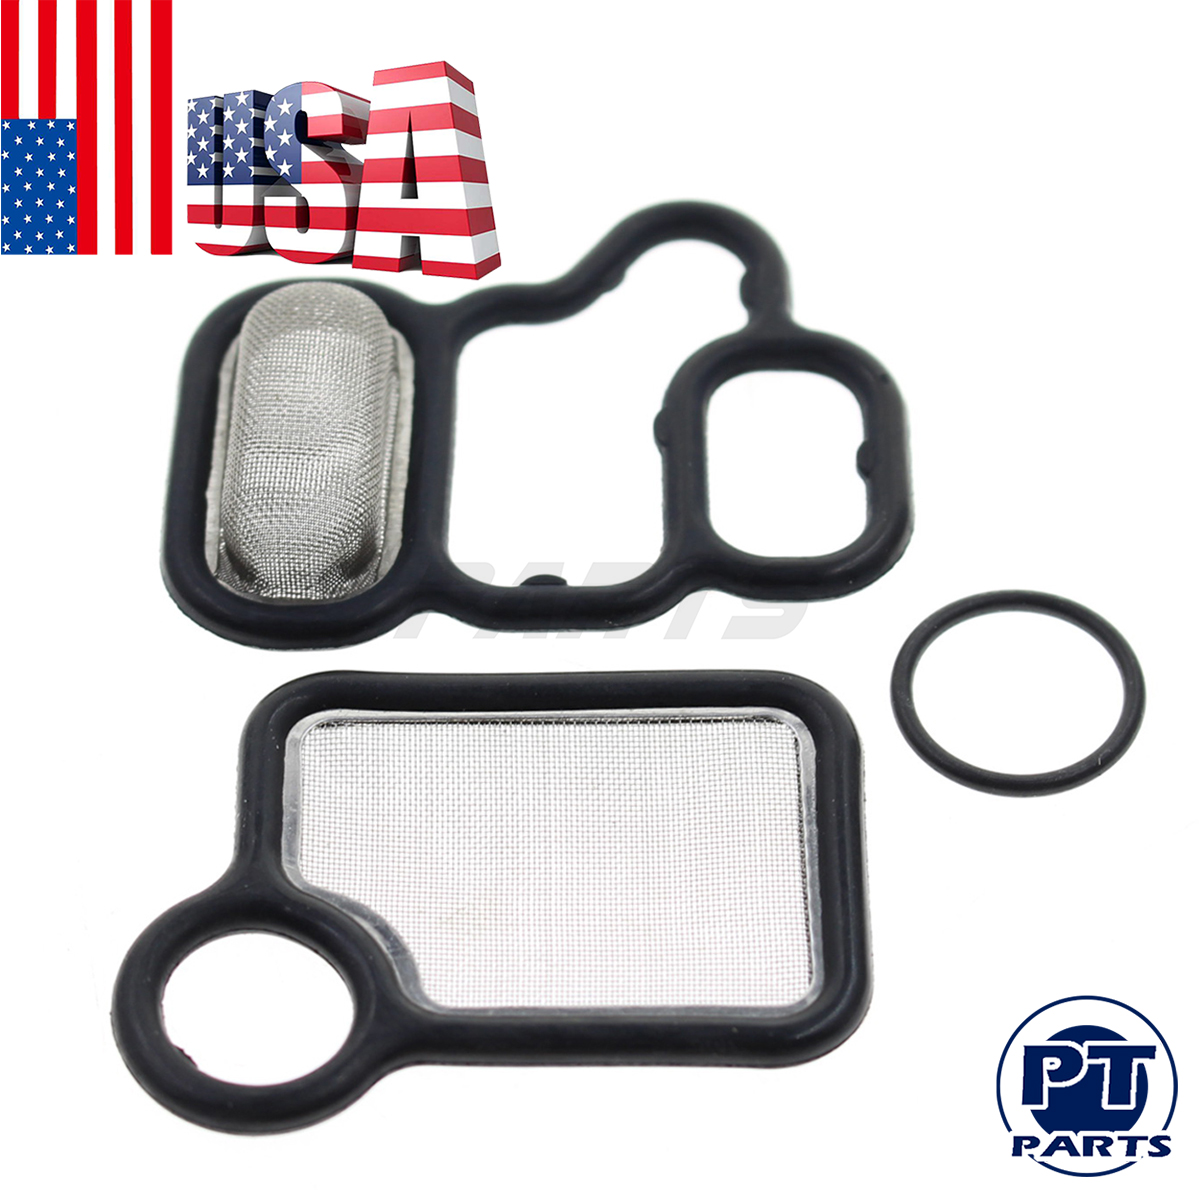 15815-RAA-A02 VTEC Solenoid Gasket Spool Valve Filter Screen For Honda CR-V Accord Civic Acura RSX RDX TSX 15845-RAA-A01 91319-PAA-A01